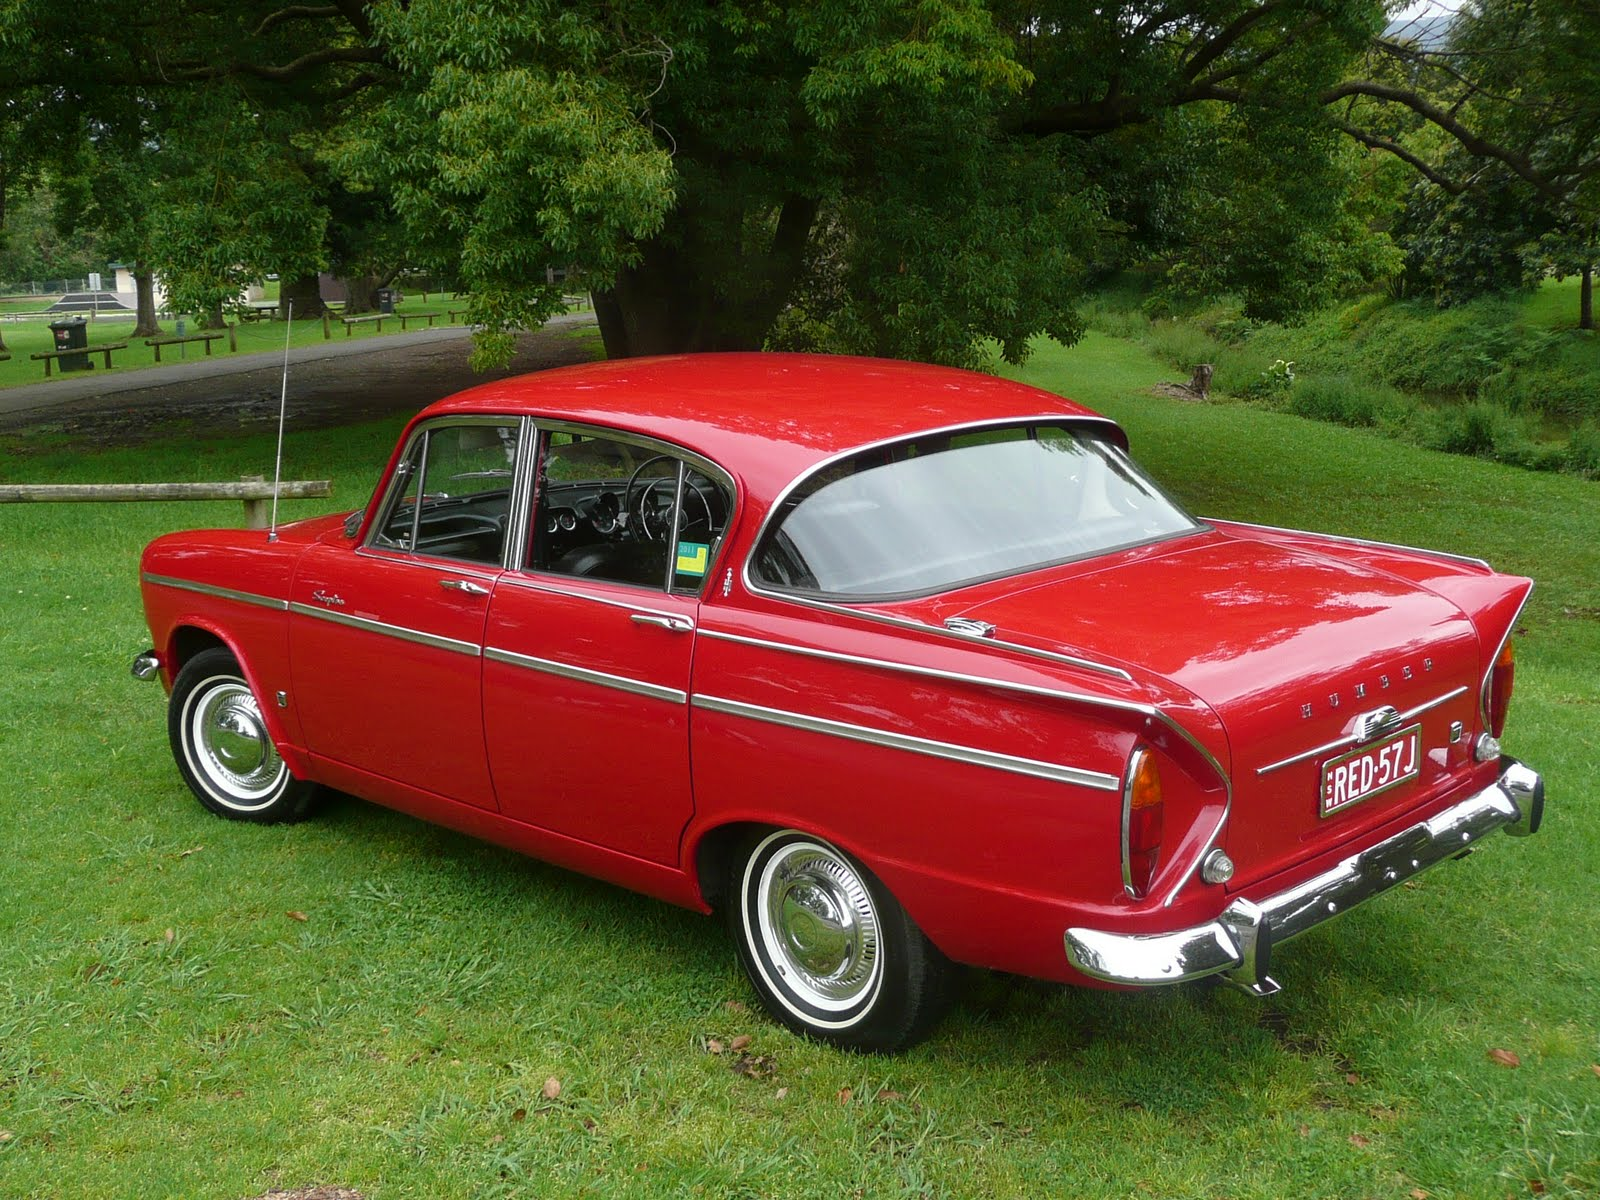 Humber sceptre photo - 4